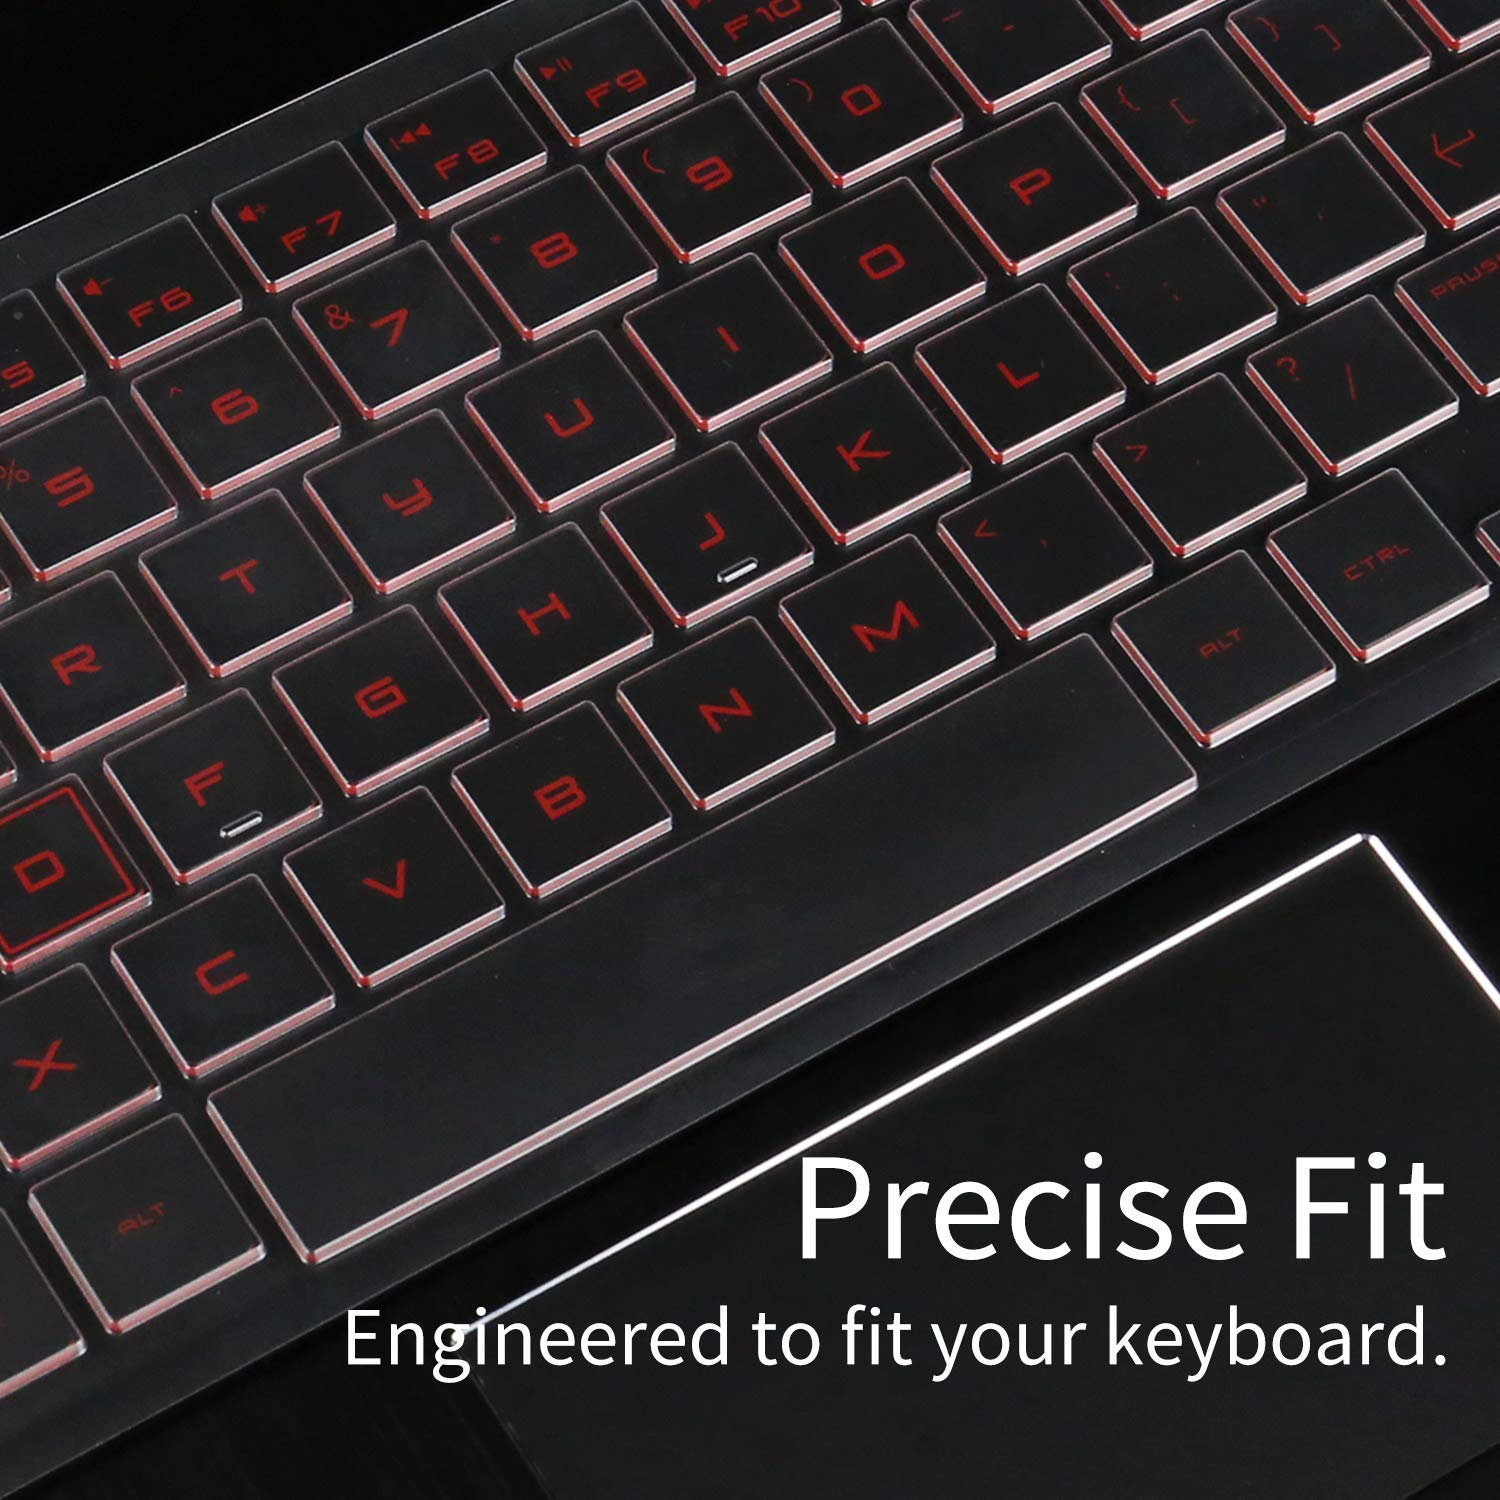 Clear Keyboard Cover Protective Skin for Dell KM636 Wireless Keyboard /& Dell KB216 Wired Keyboard Cover Protector